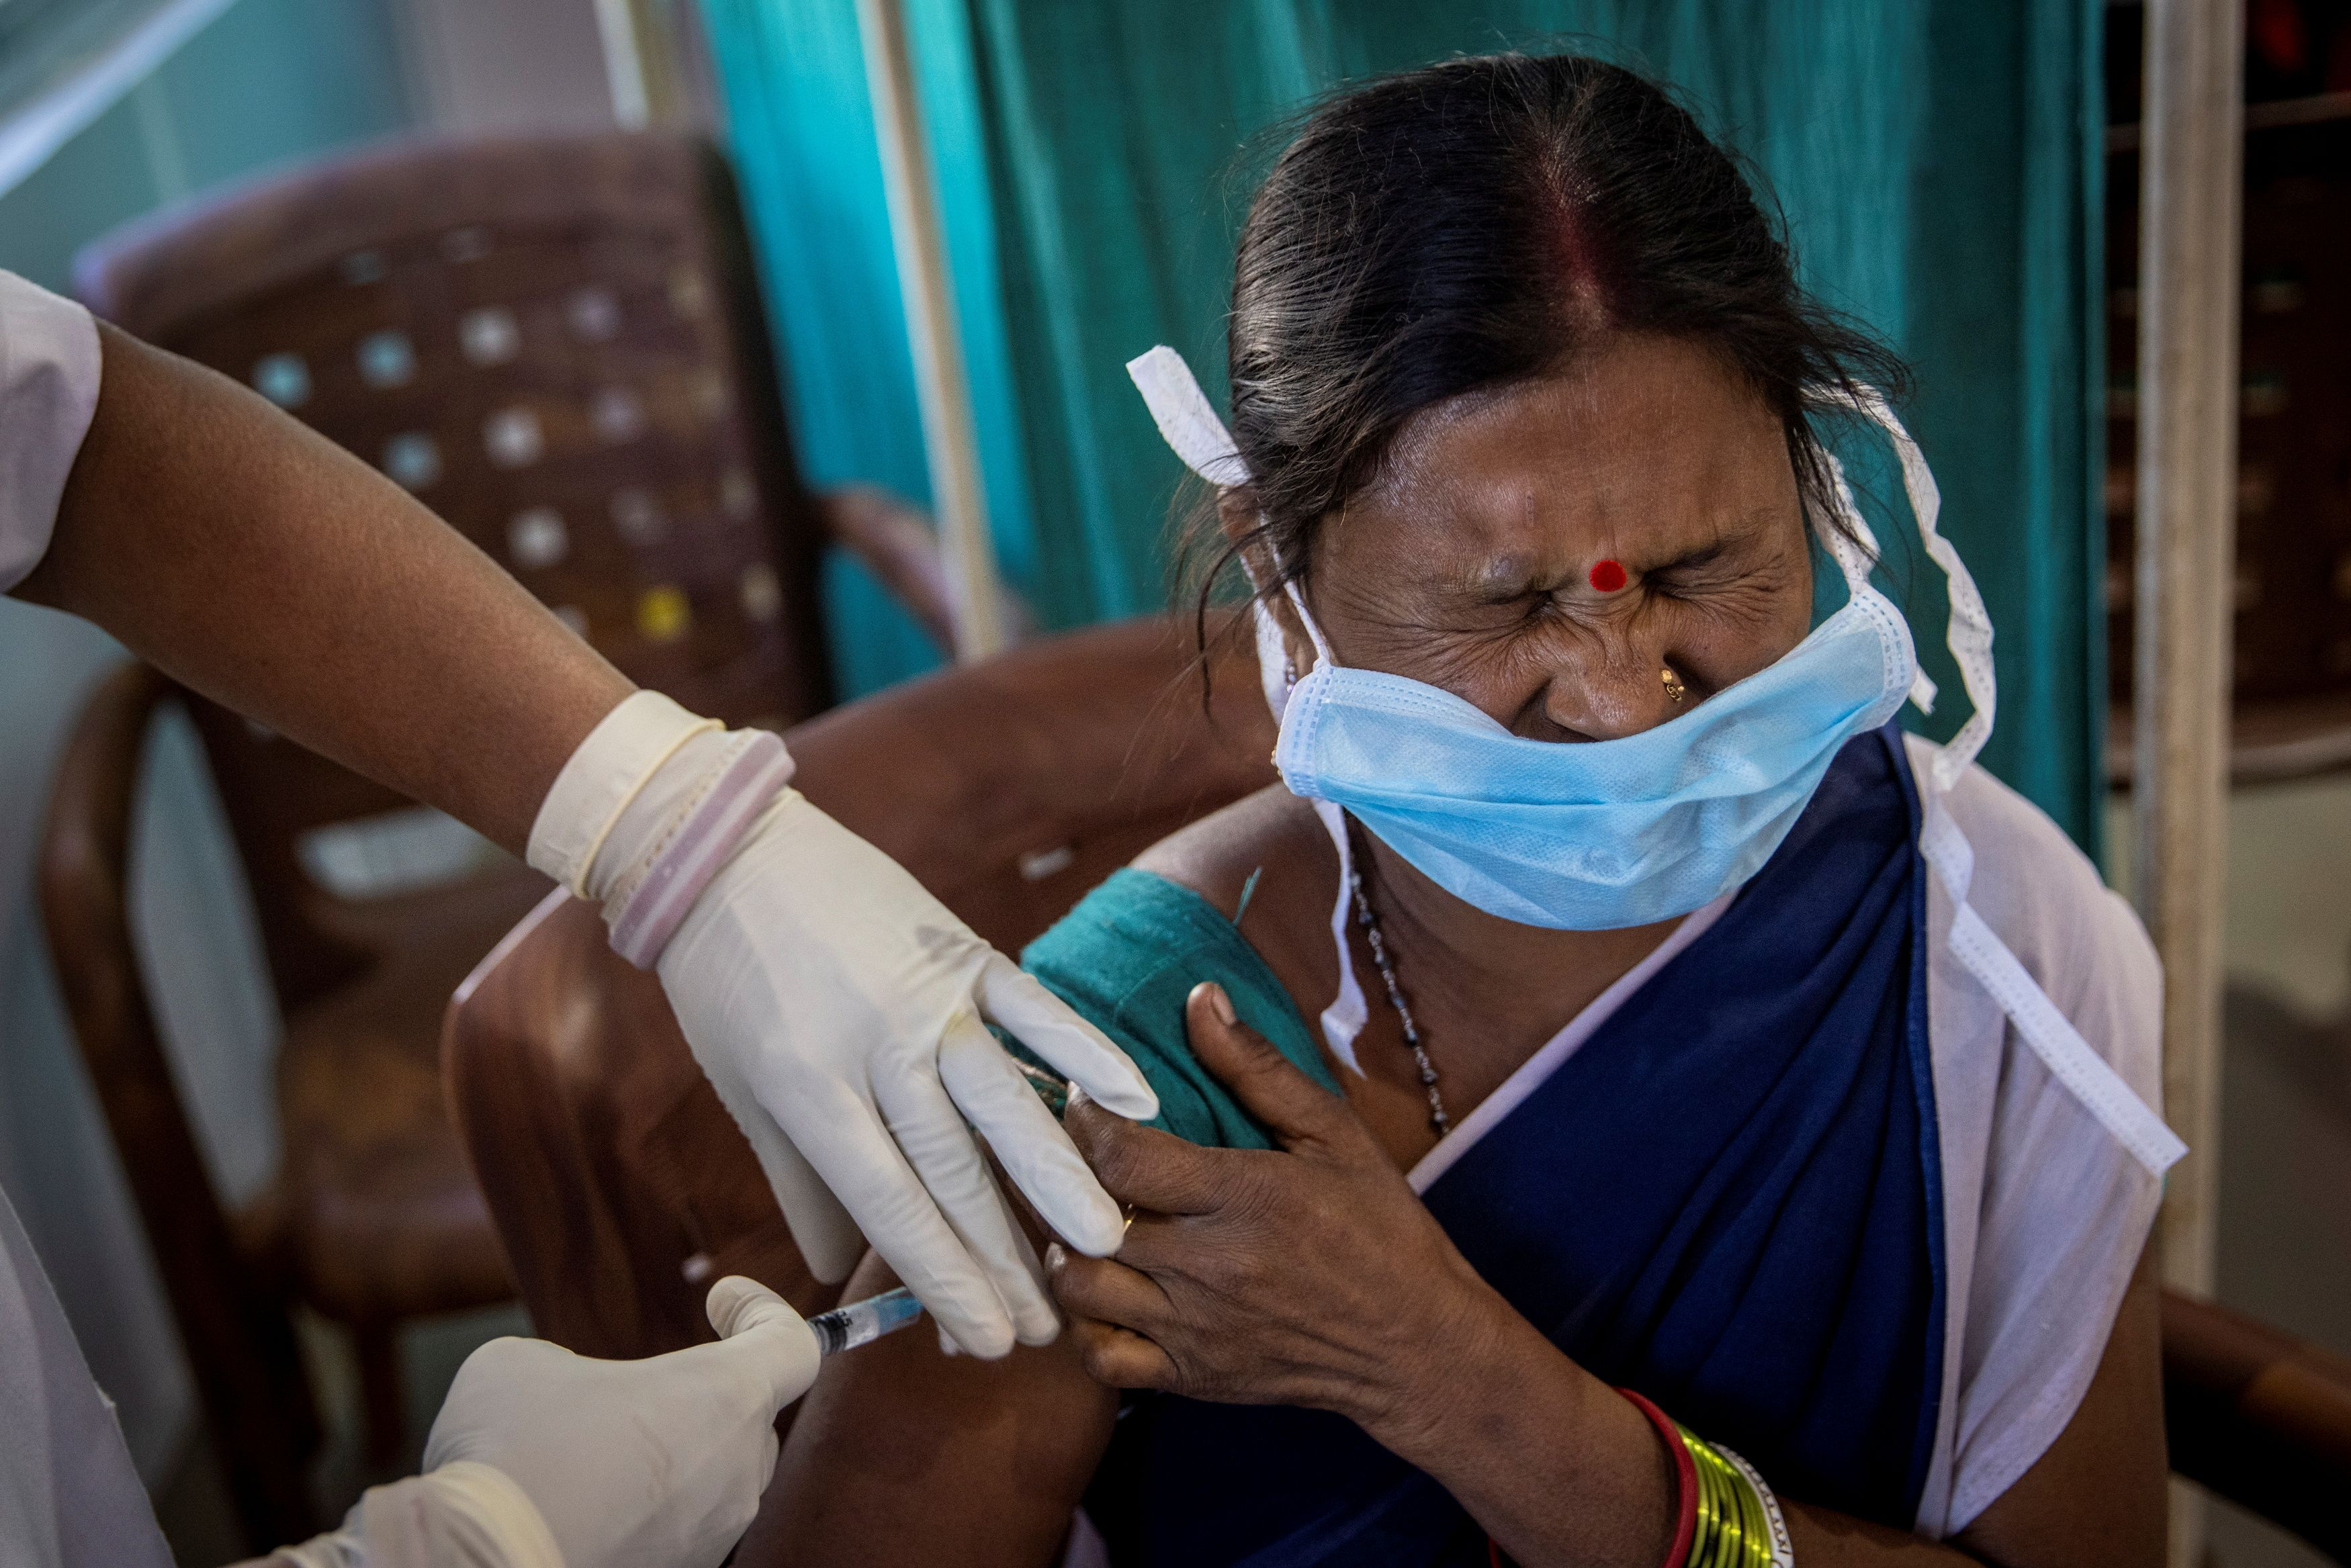 A healthcare worker reacts as she receives a dose of COVISHIELD, a COVID-19 vaccine manufactured by Serum Institute of India, during one of the world's largest COVID-19 vaccination campaigns at Mathalput Community Health Centre in Koraput district of the eastern state of Odisha, India, January 16, 2021. REUTERS/Danish Siddiqui